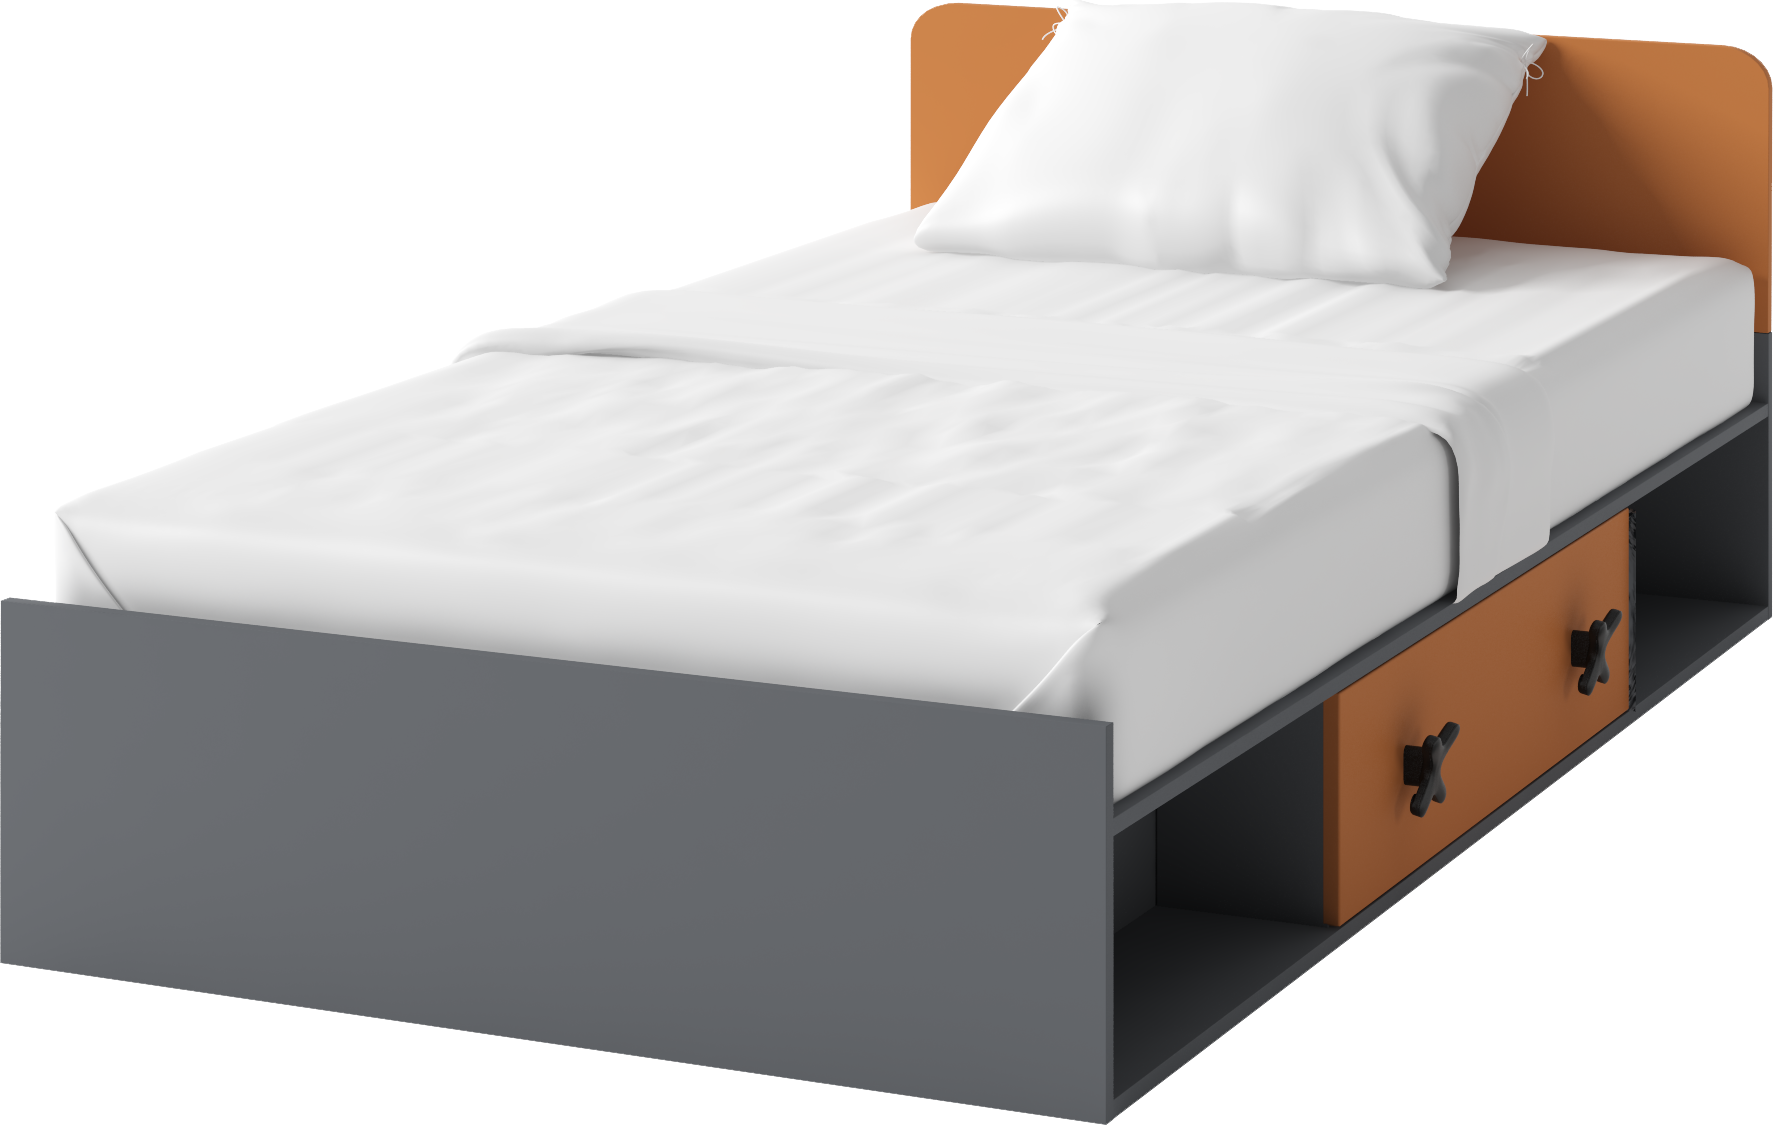 Png images free download. Clipart bed bed linen